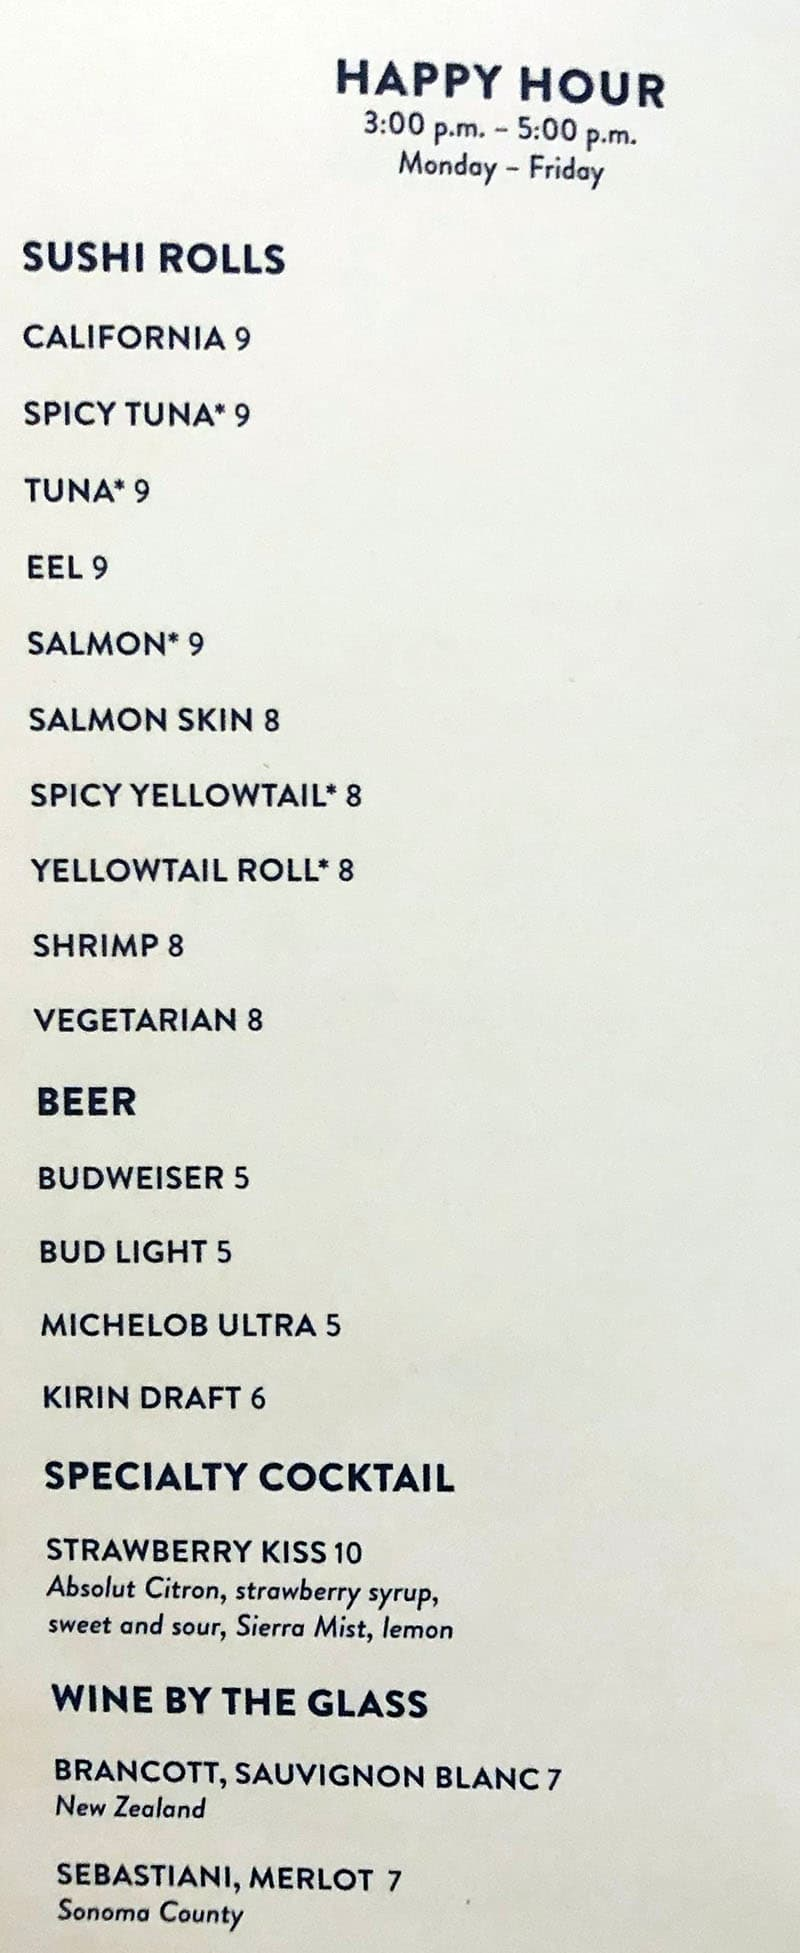 Mizuya Mandalay Bay menu - happy hour